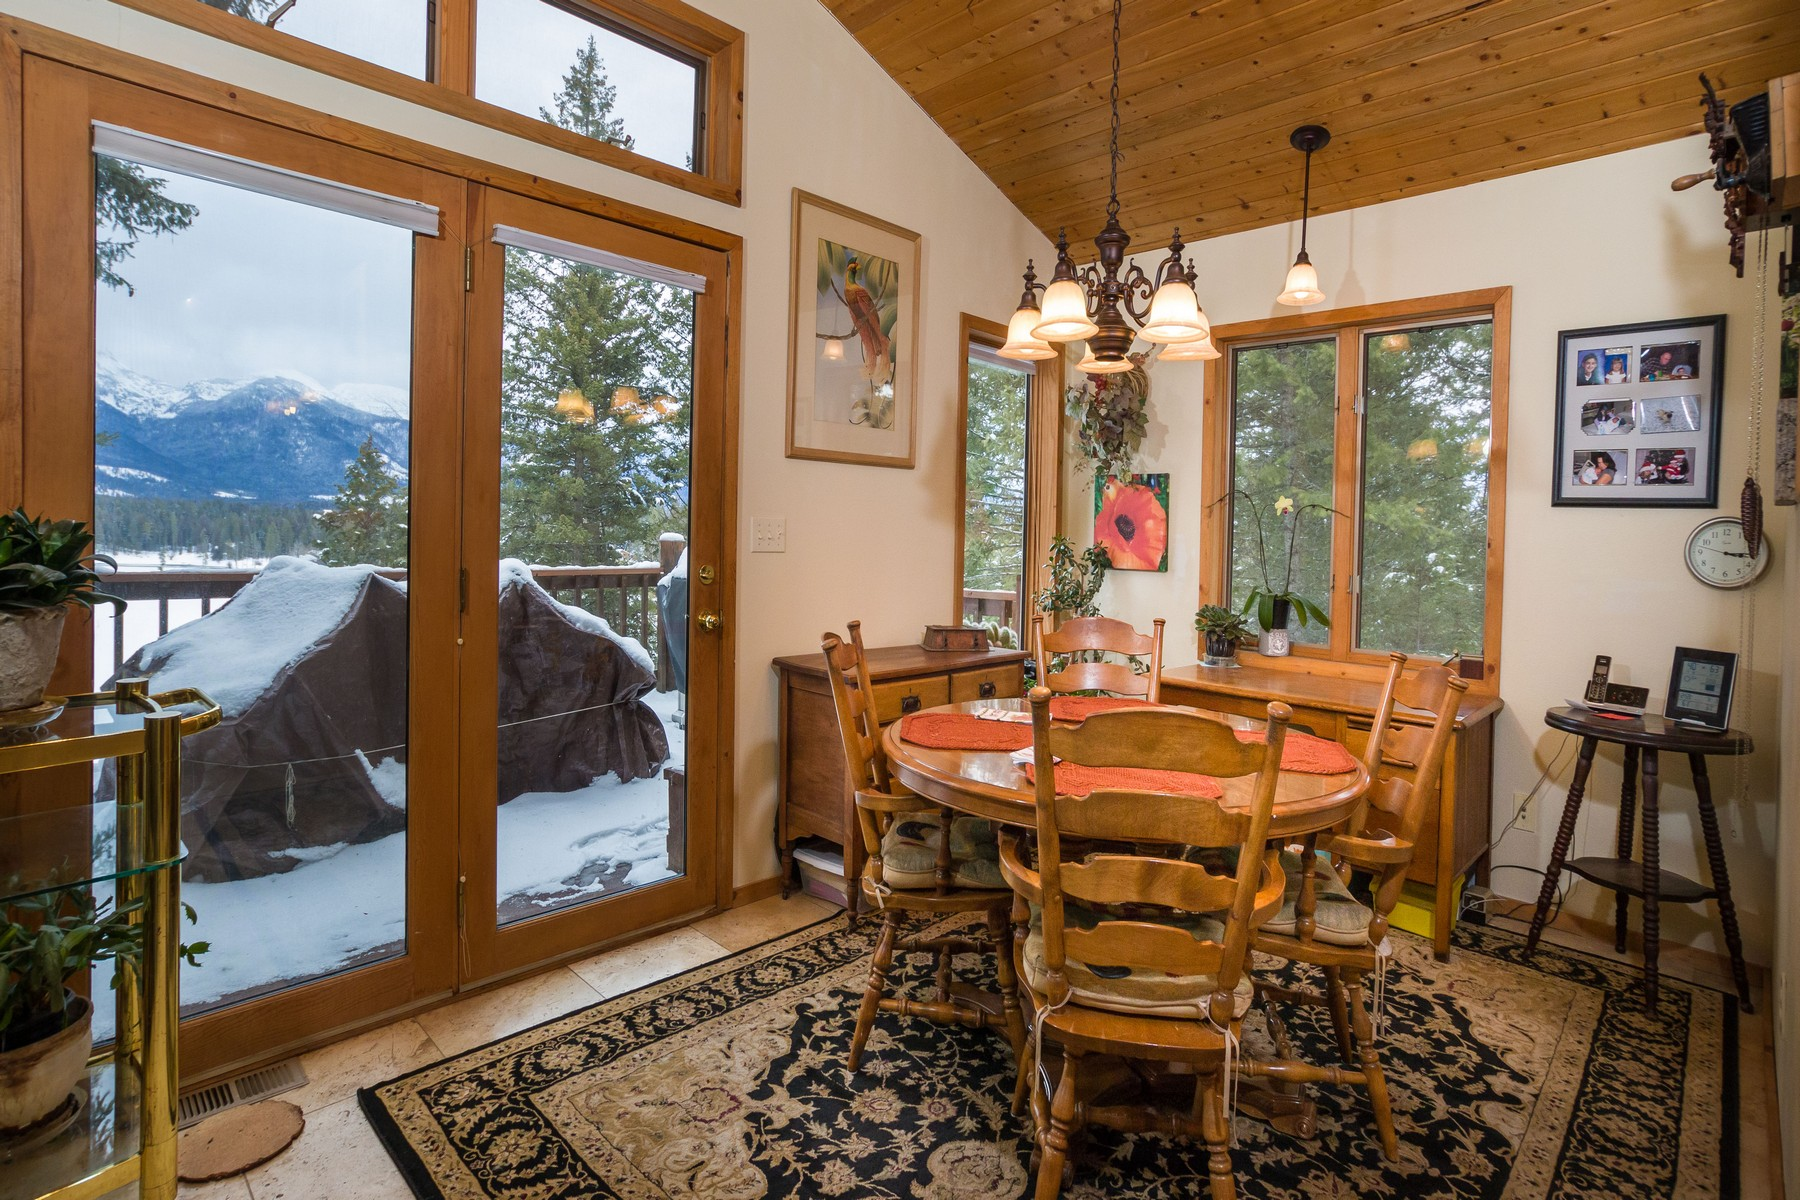 Additional photo for property listing at 1014 La Brant Rd , Bigfork, MT 59911 1014  La Brant Rd Bigfork, Montana 59911 United States